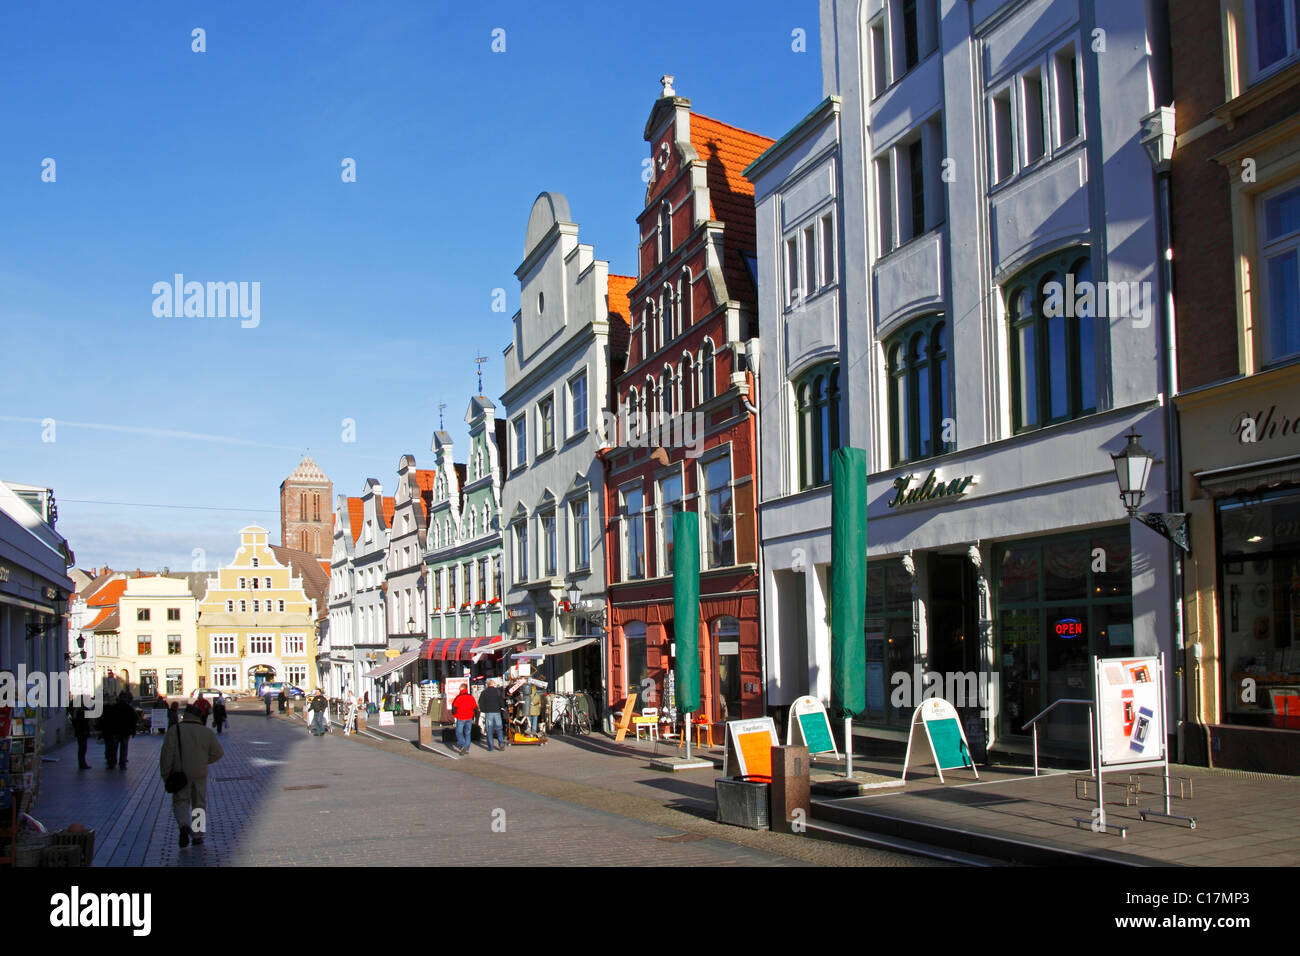 Historic town houses, Kraemerstrasse in the Old Town of Wismar, UNESCO World Heritage Site, Mecklenburg-Western - Stock Image